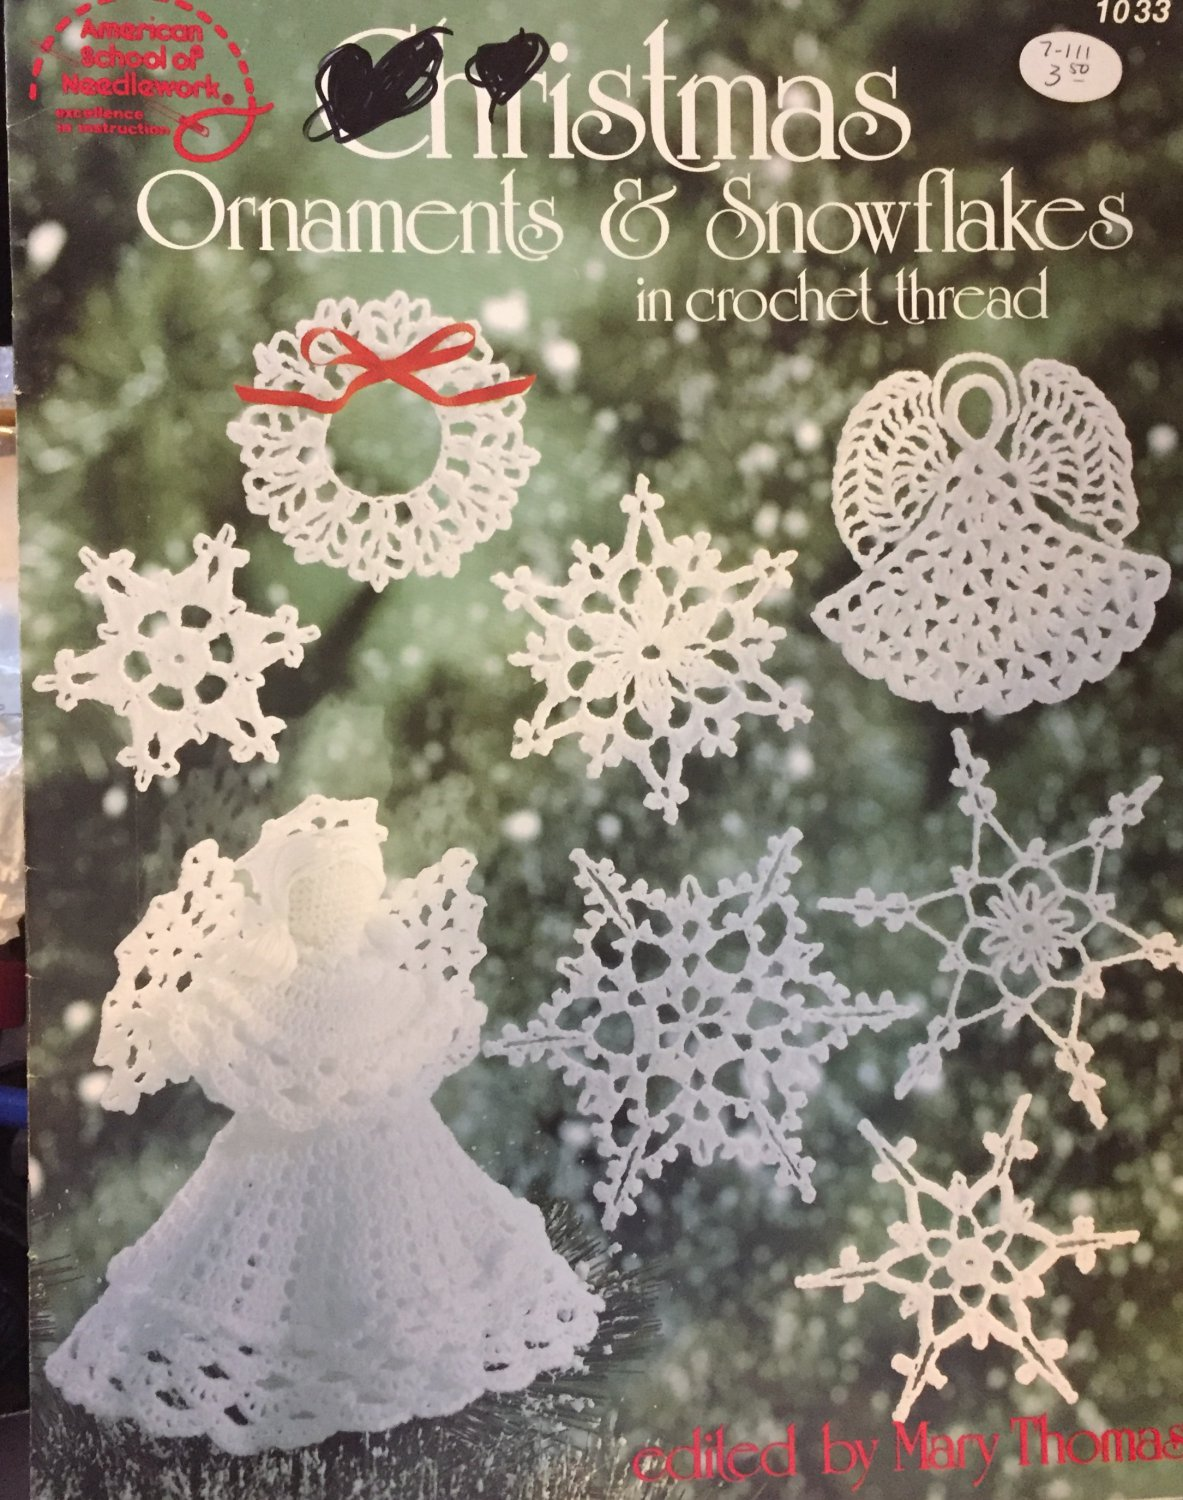 Christmas Ornaments & Snowflakes thread crochet pattern From American School of Needlework SOLD OUT